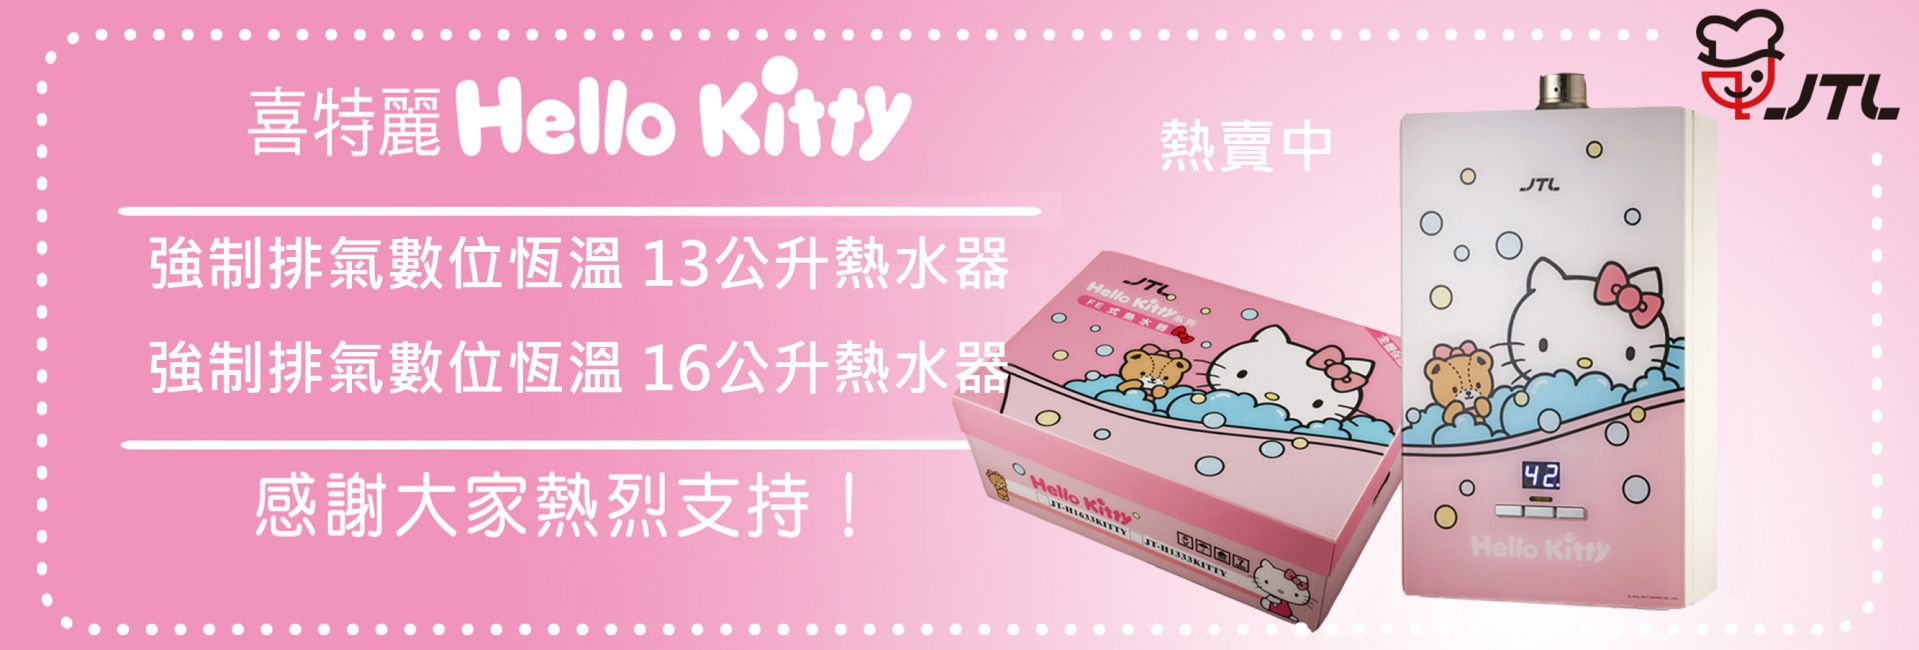 HELLO KITTY 熱水器